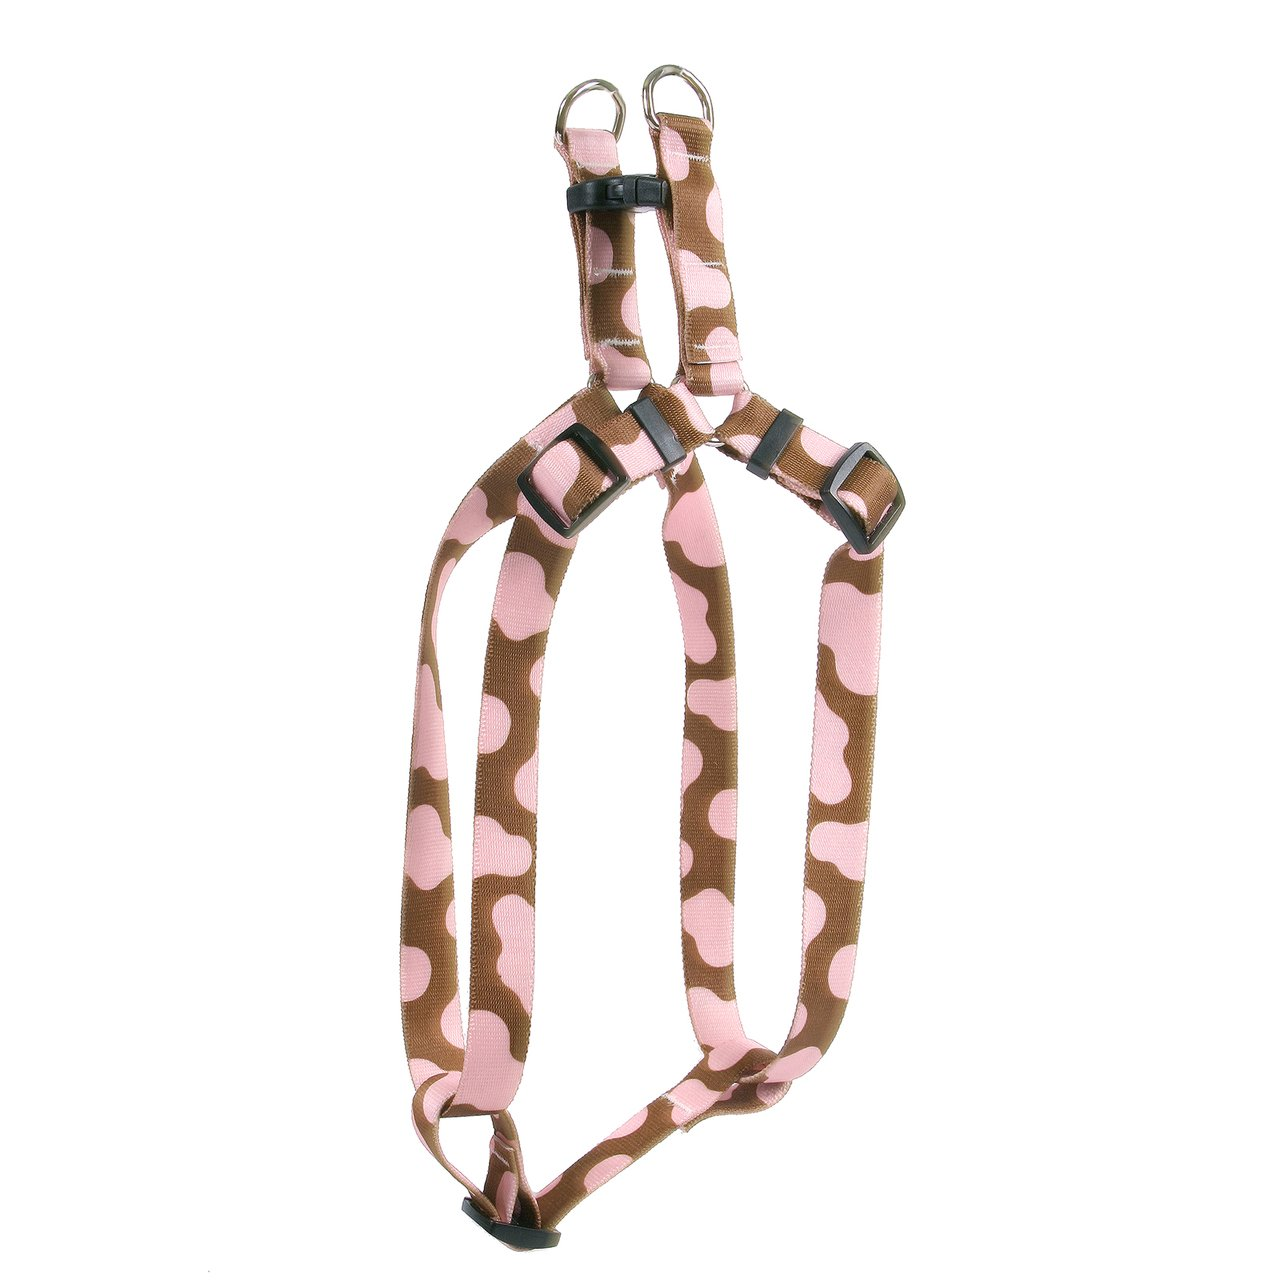 Yellow Dog Design Pink Cow Step-In Dog Harness, X-Small-3/8'' Wide and fits Chest Circumference of 4.5 to 9''